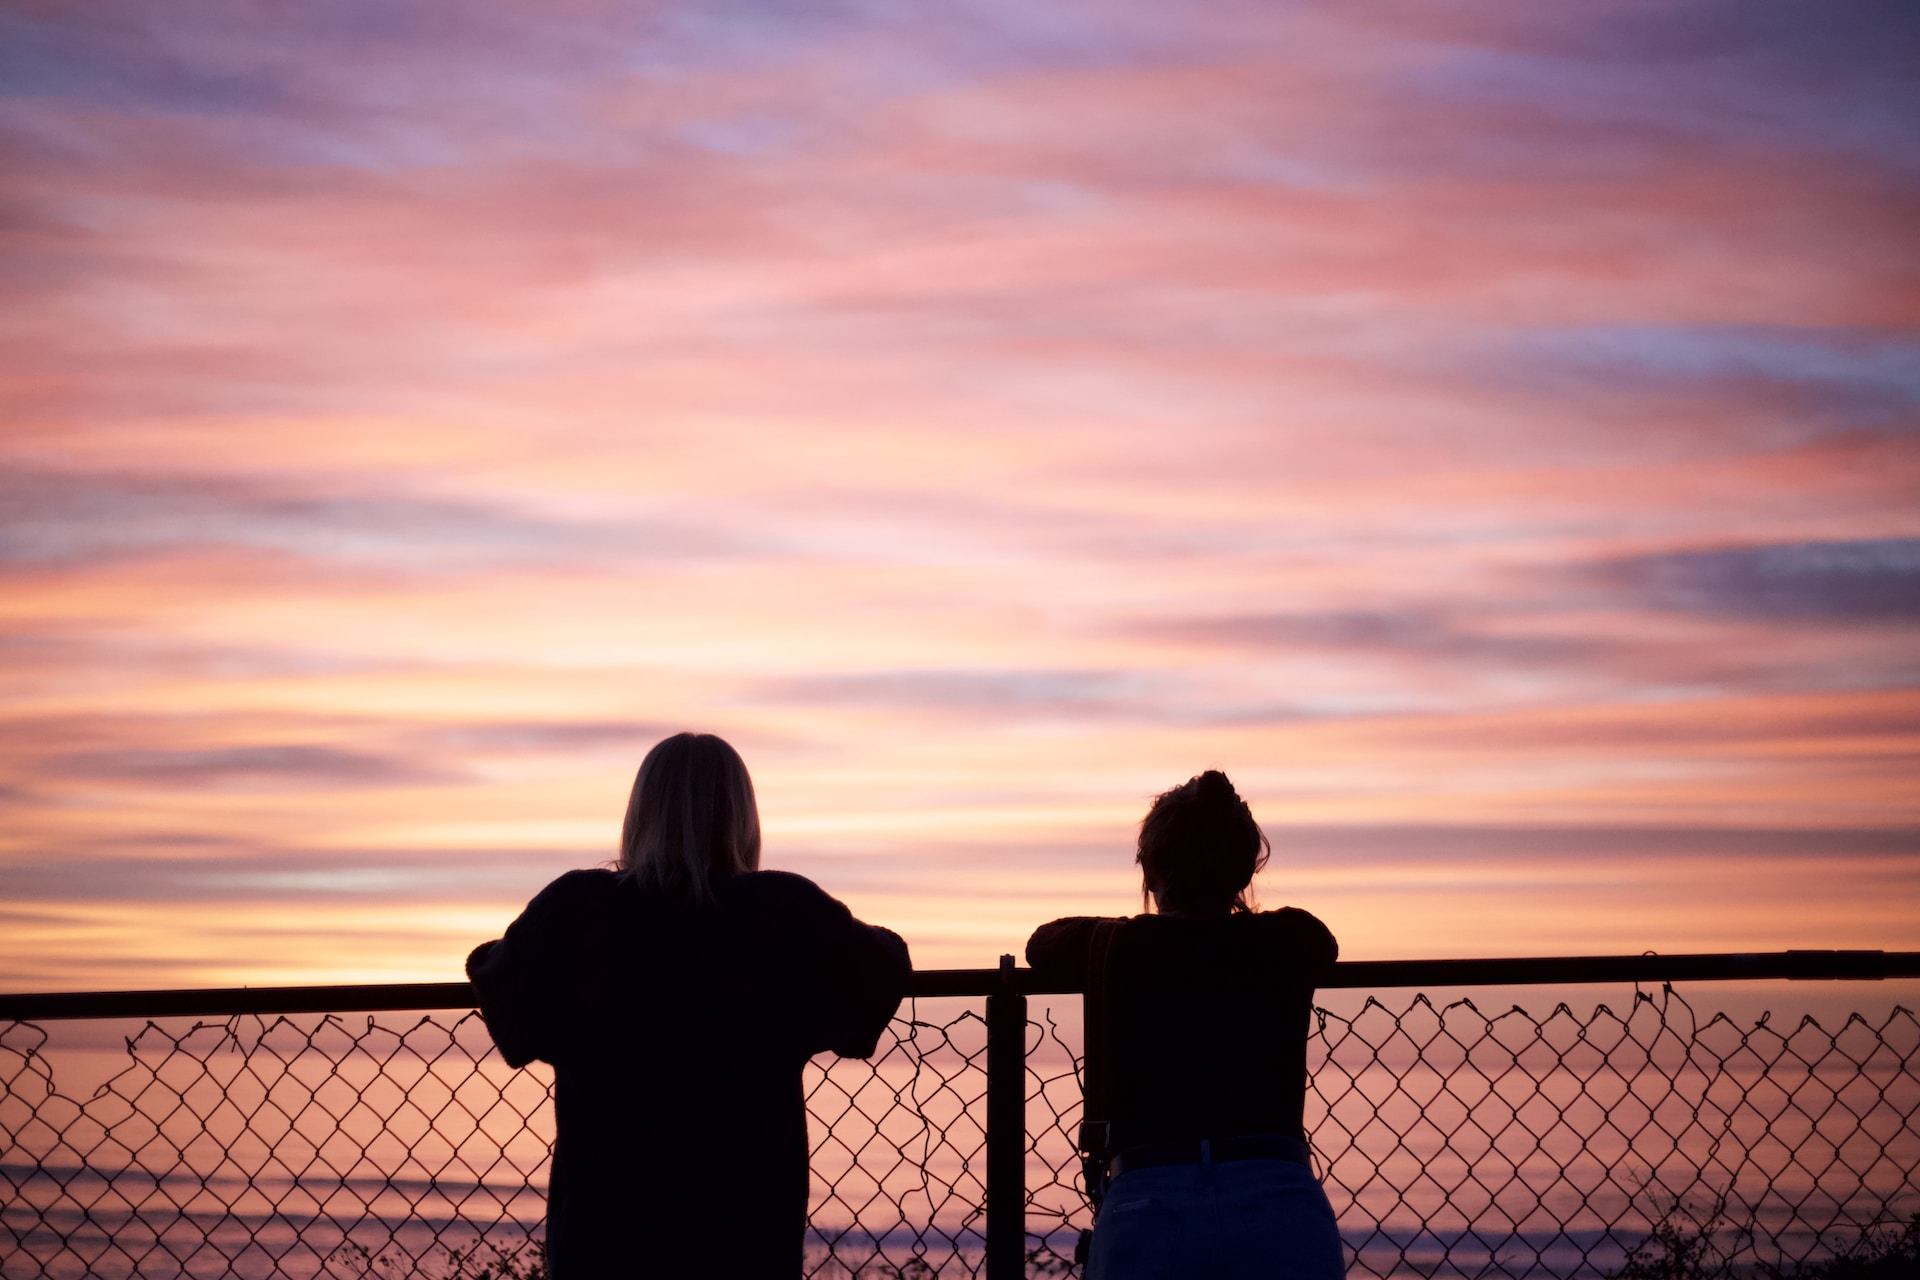 silhouette of 2 person standing beside fence during sunset